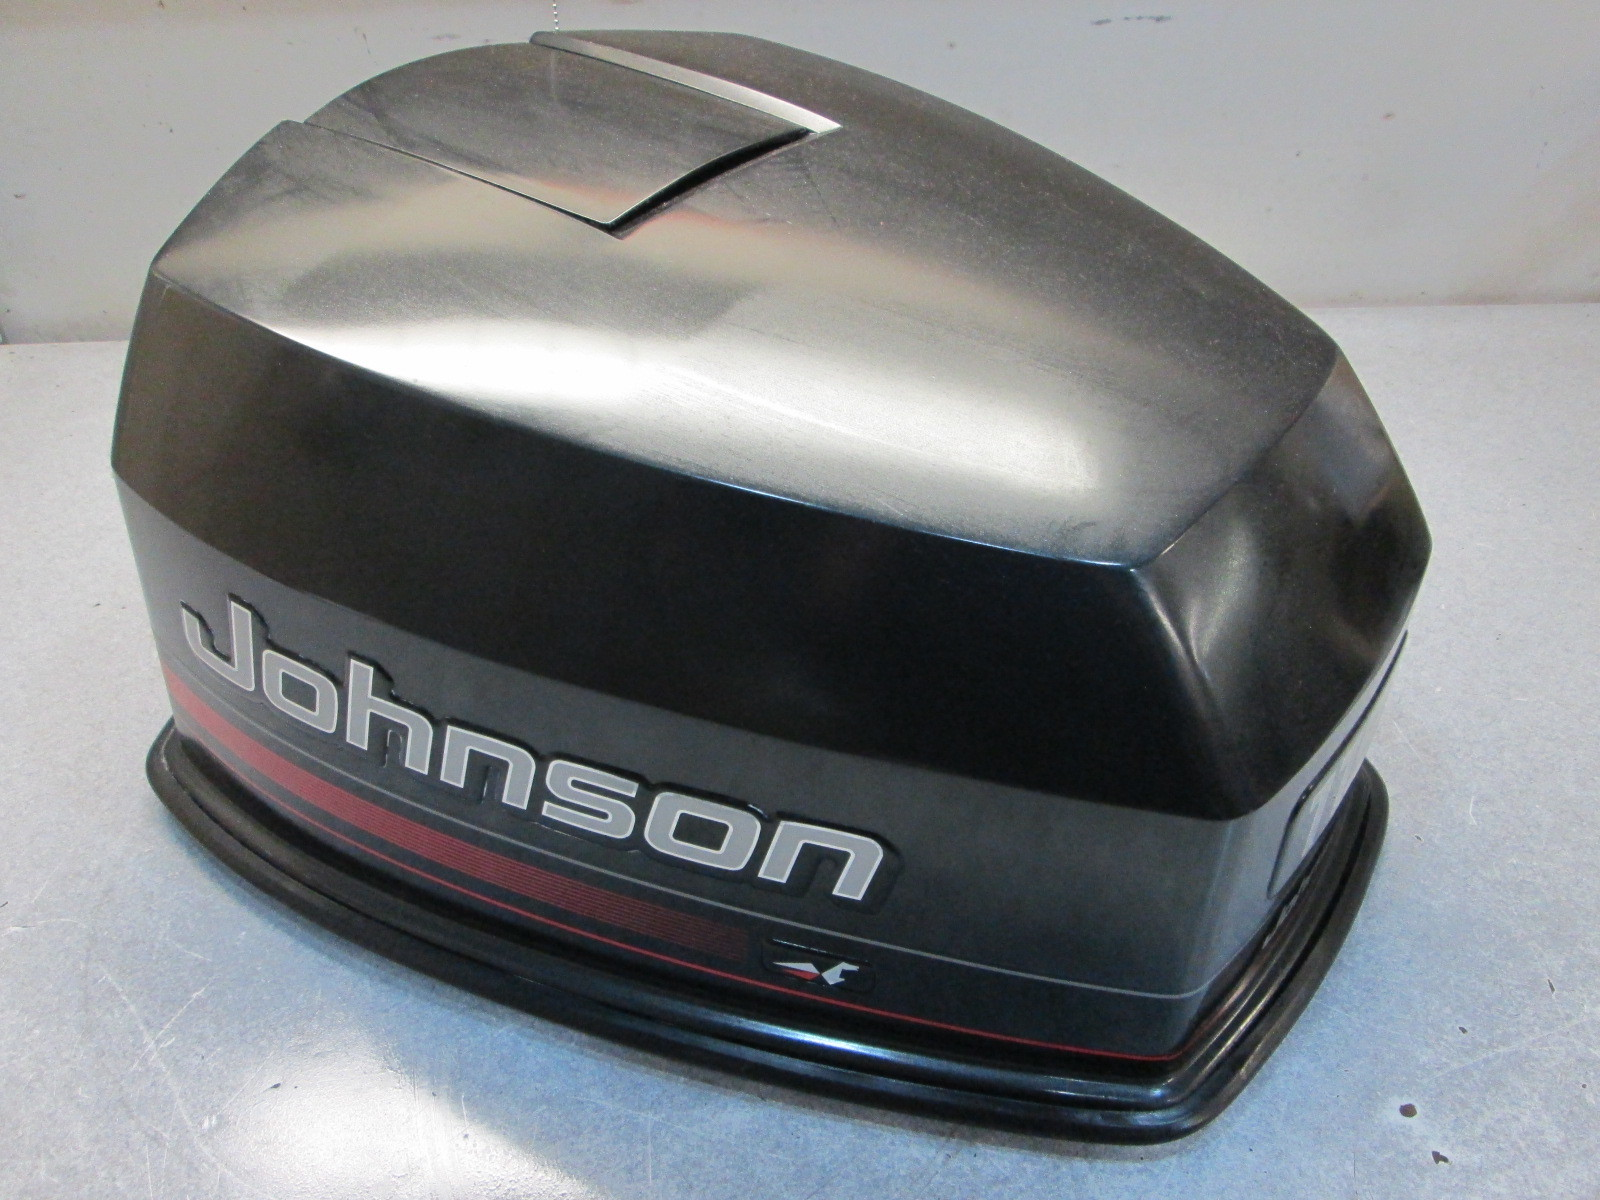 284739 johnson outboard top engine cover cowl 1995 88 90 for 115 johnson outboard motor